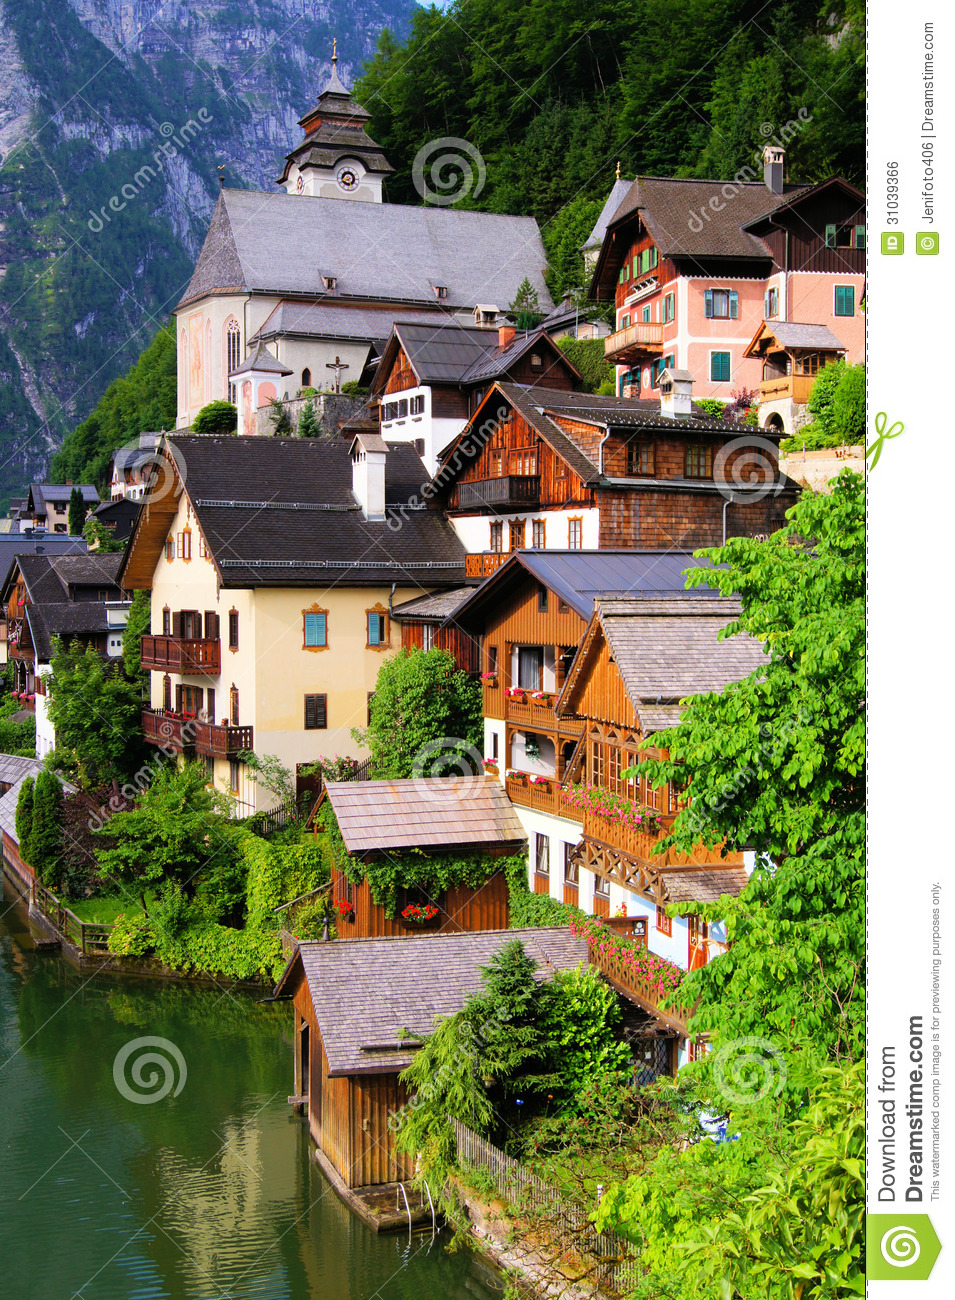 Quaint Austrian Village Royalty Free Stock Image - Image: 31039366